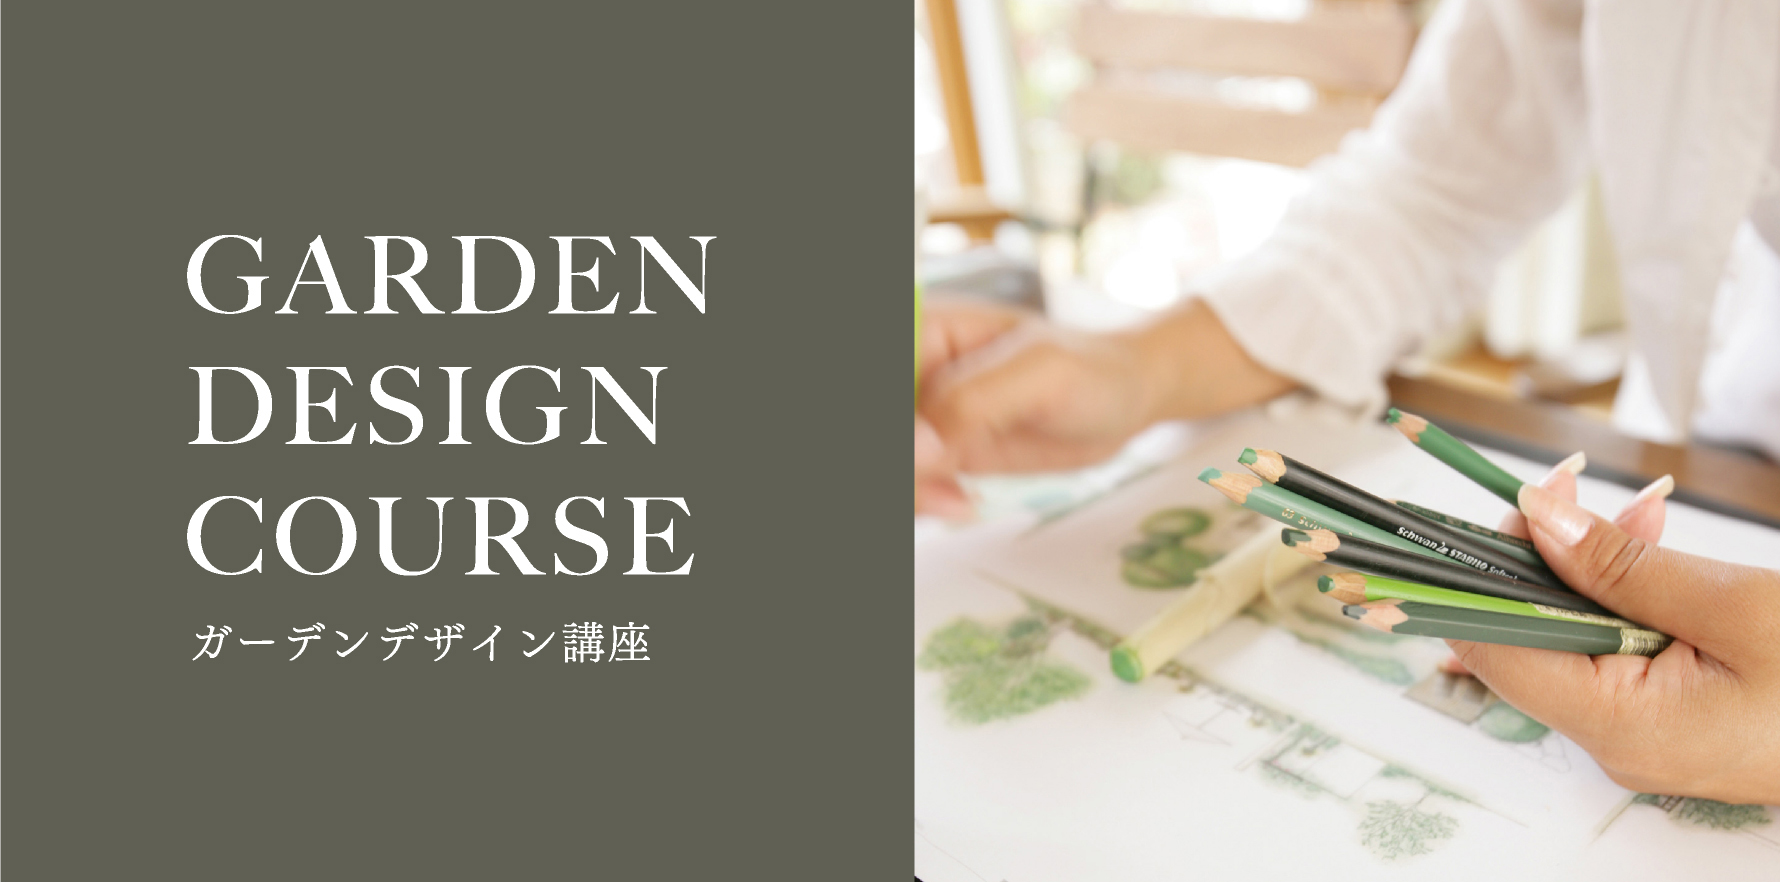 GARDEN DESIGN COURS ガーデンデザイン講座